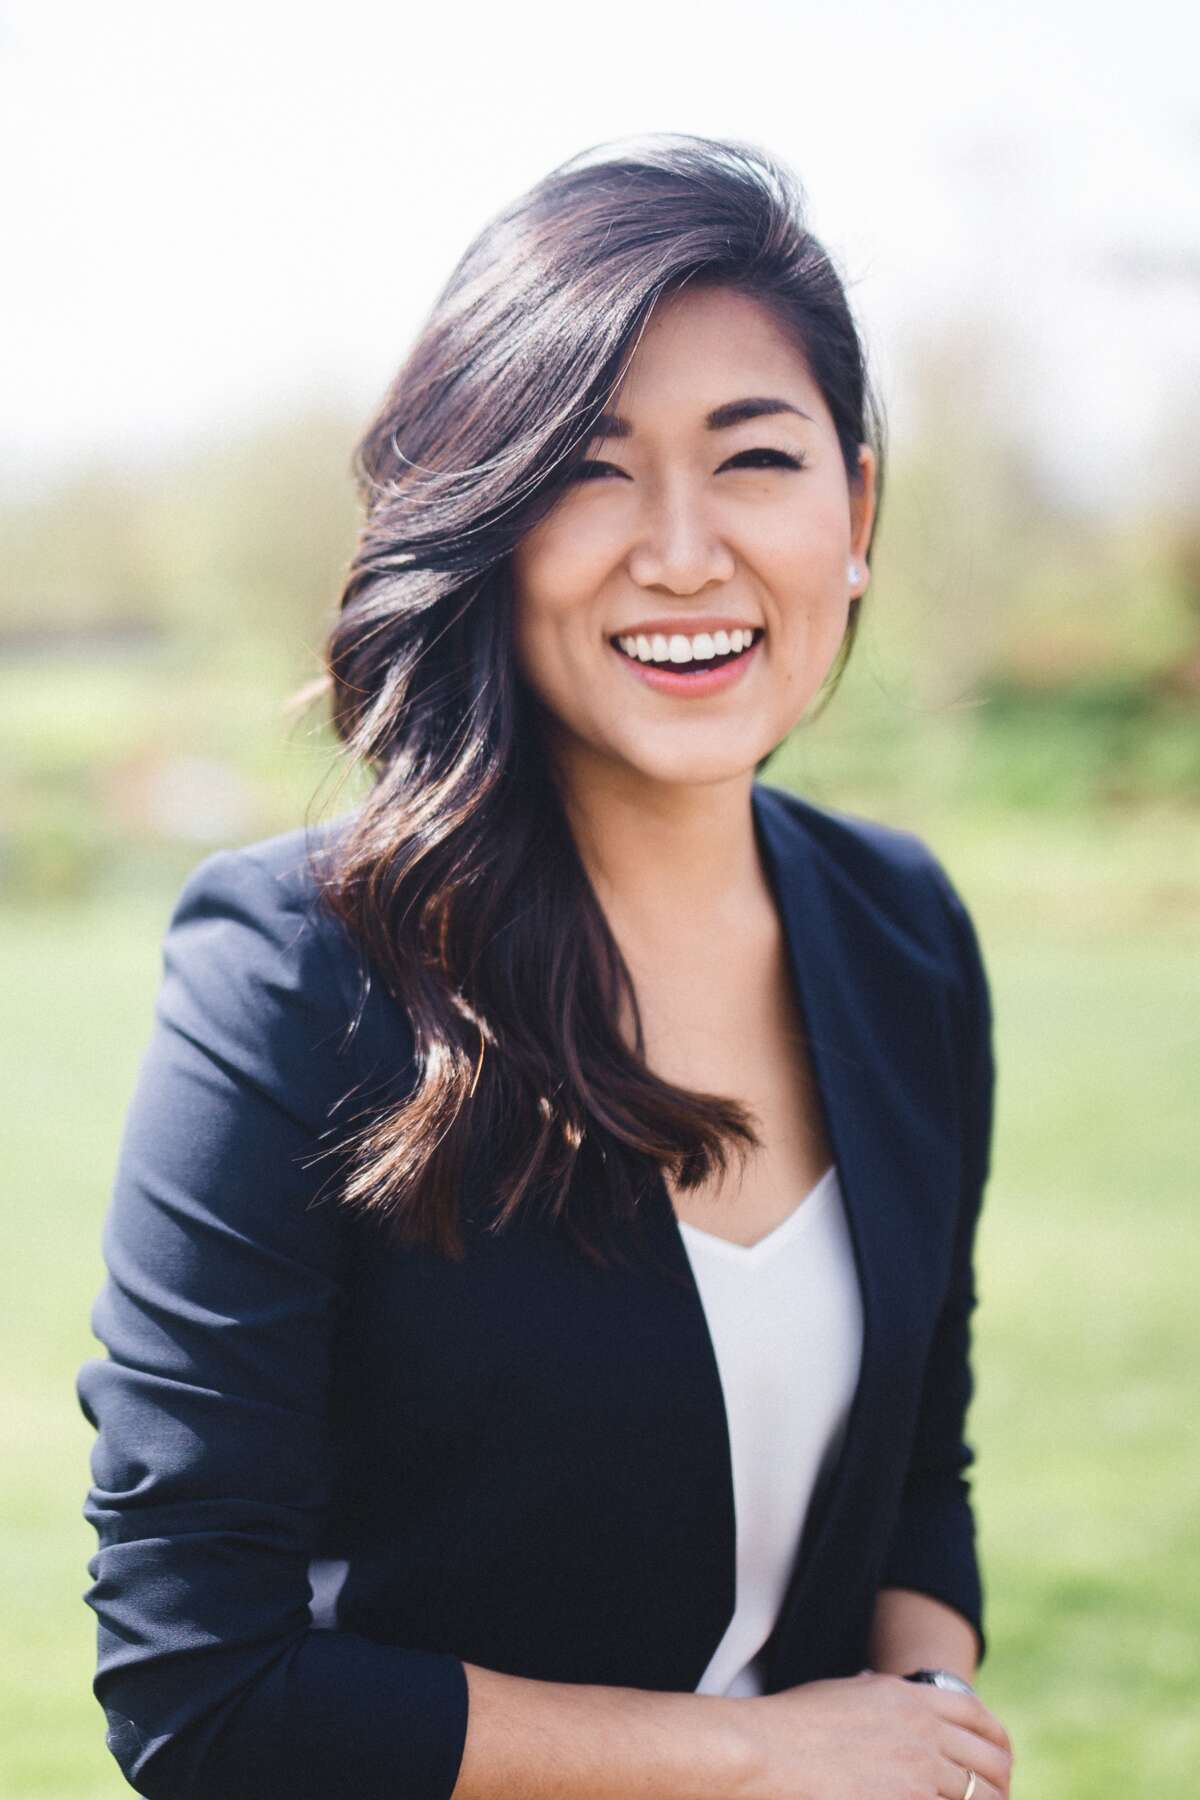 Jinyoung Lee Englund, the Republicans' state Senate candidate in the 45th District, is a protege of Eastern Washington's U.S. Rep. Cathy McMorris Rodgers, and worked in 2012 for Mitt Romney.